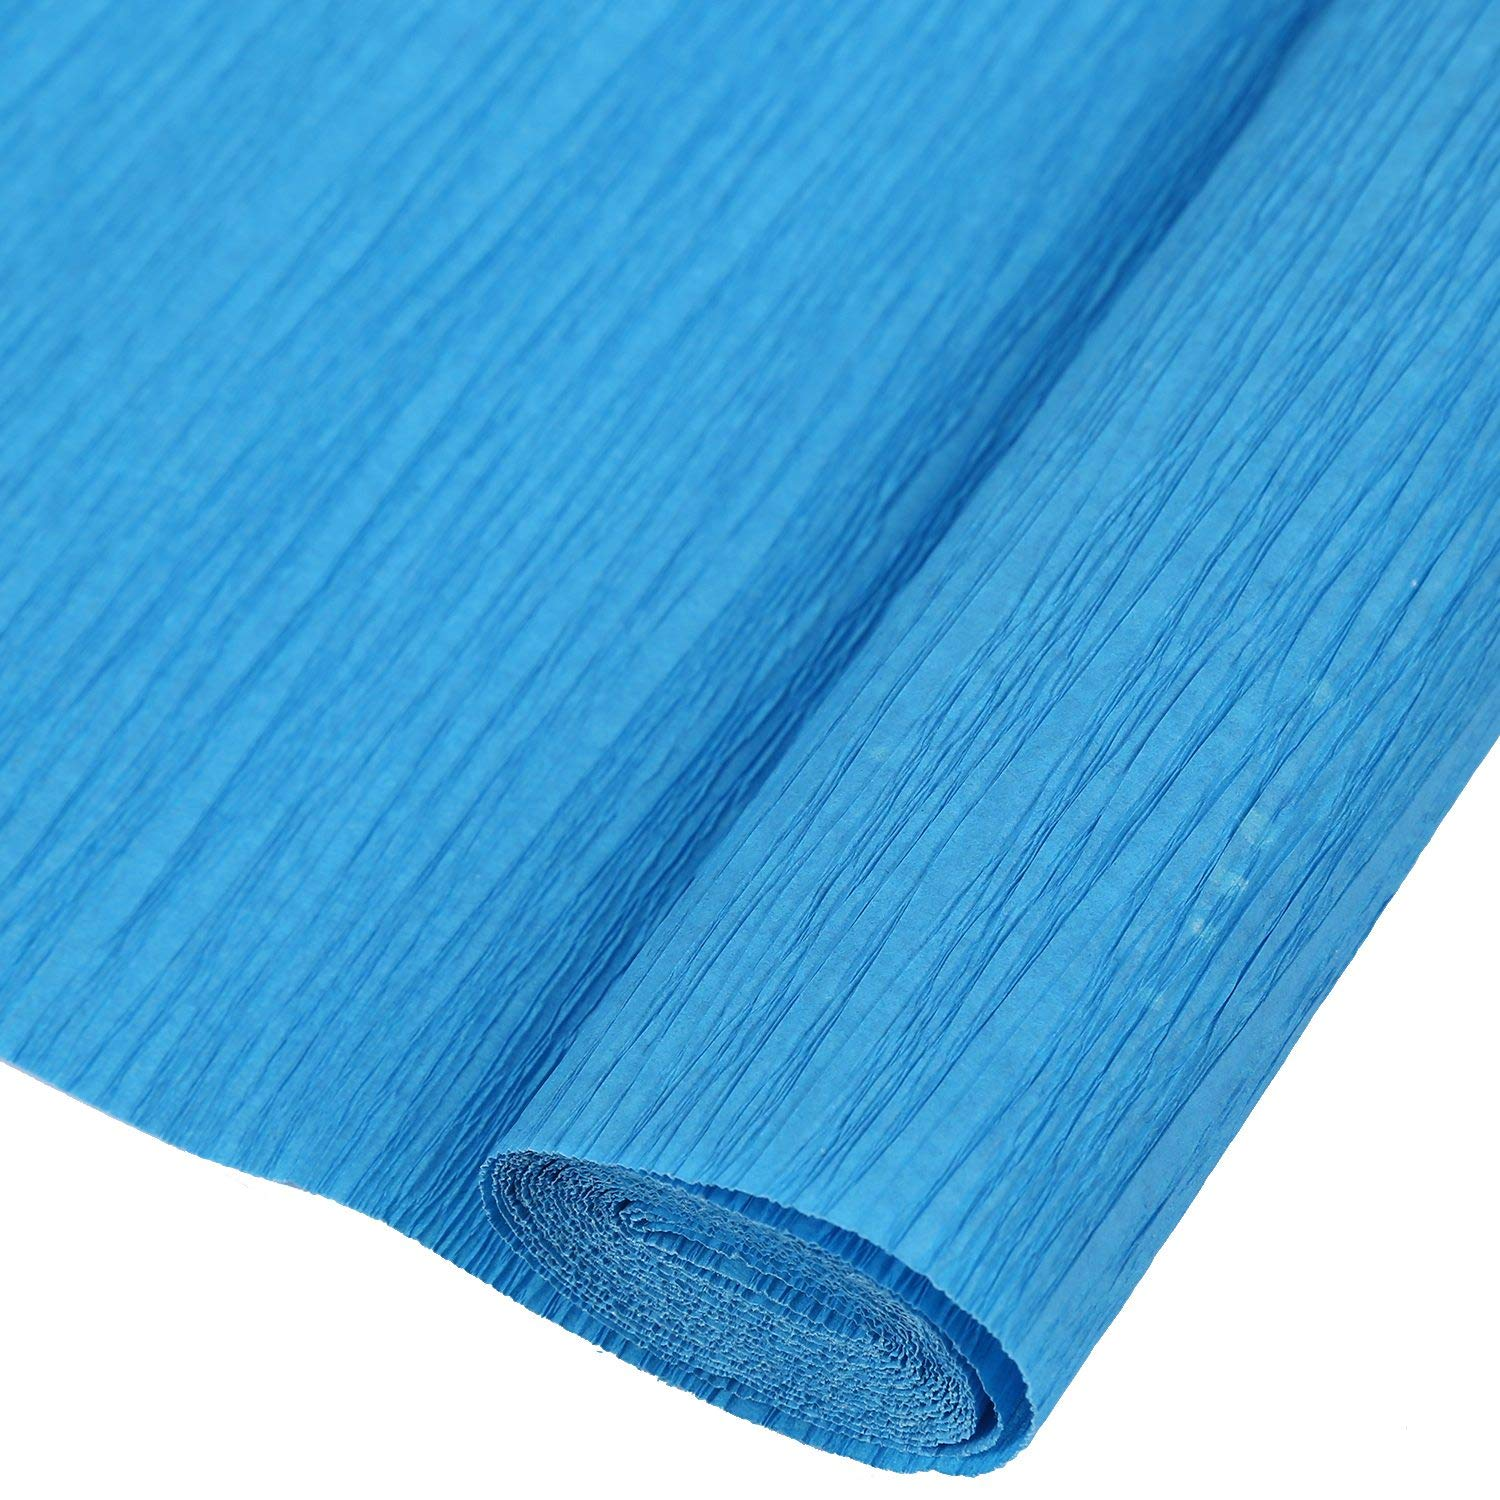 R SODIAL 1 Roll DIY Flower Packing Crepe Papers Handmade Materials Crinkled Paper for Birthday Wedding Party Decoration 25050cmm(blue)